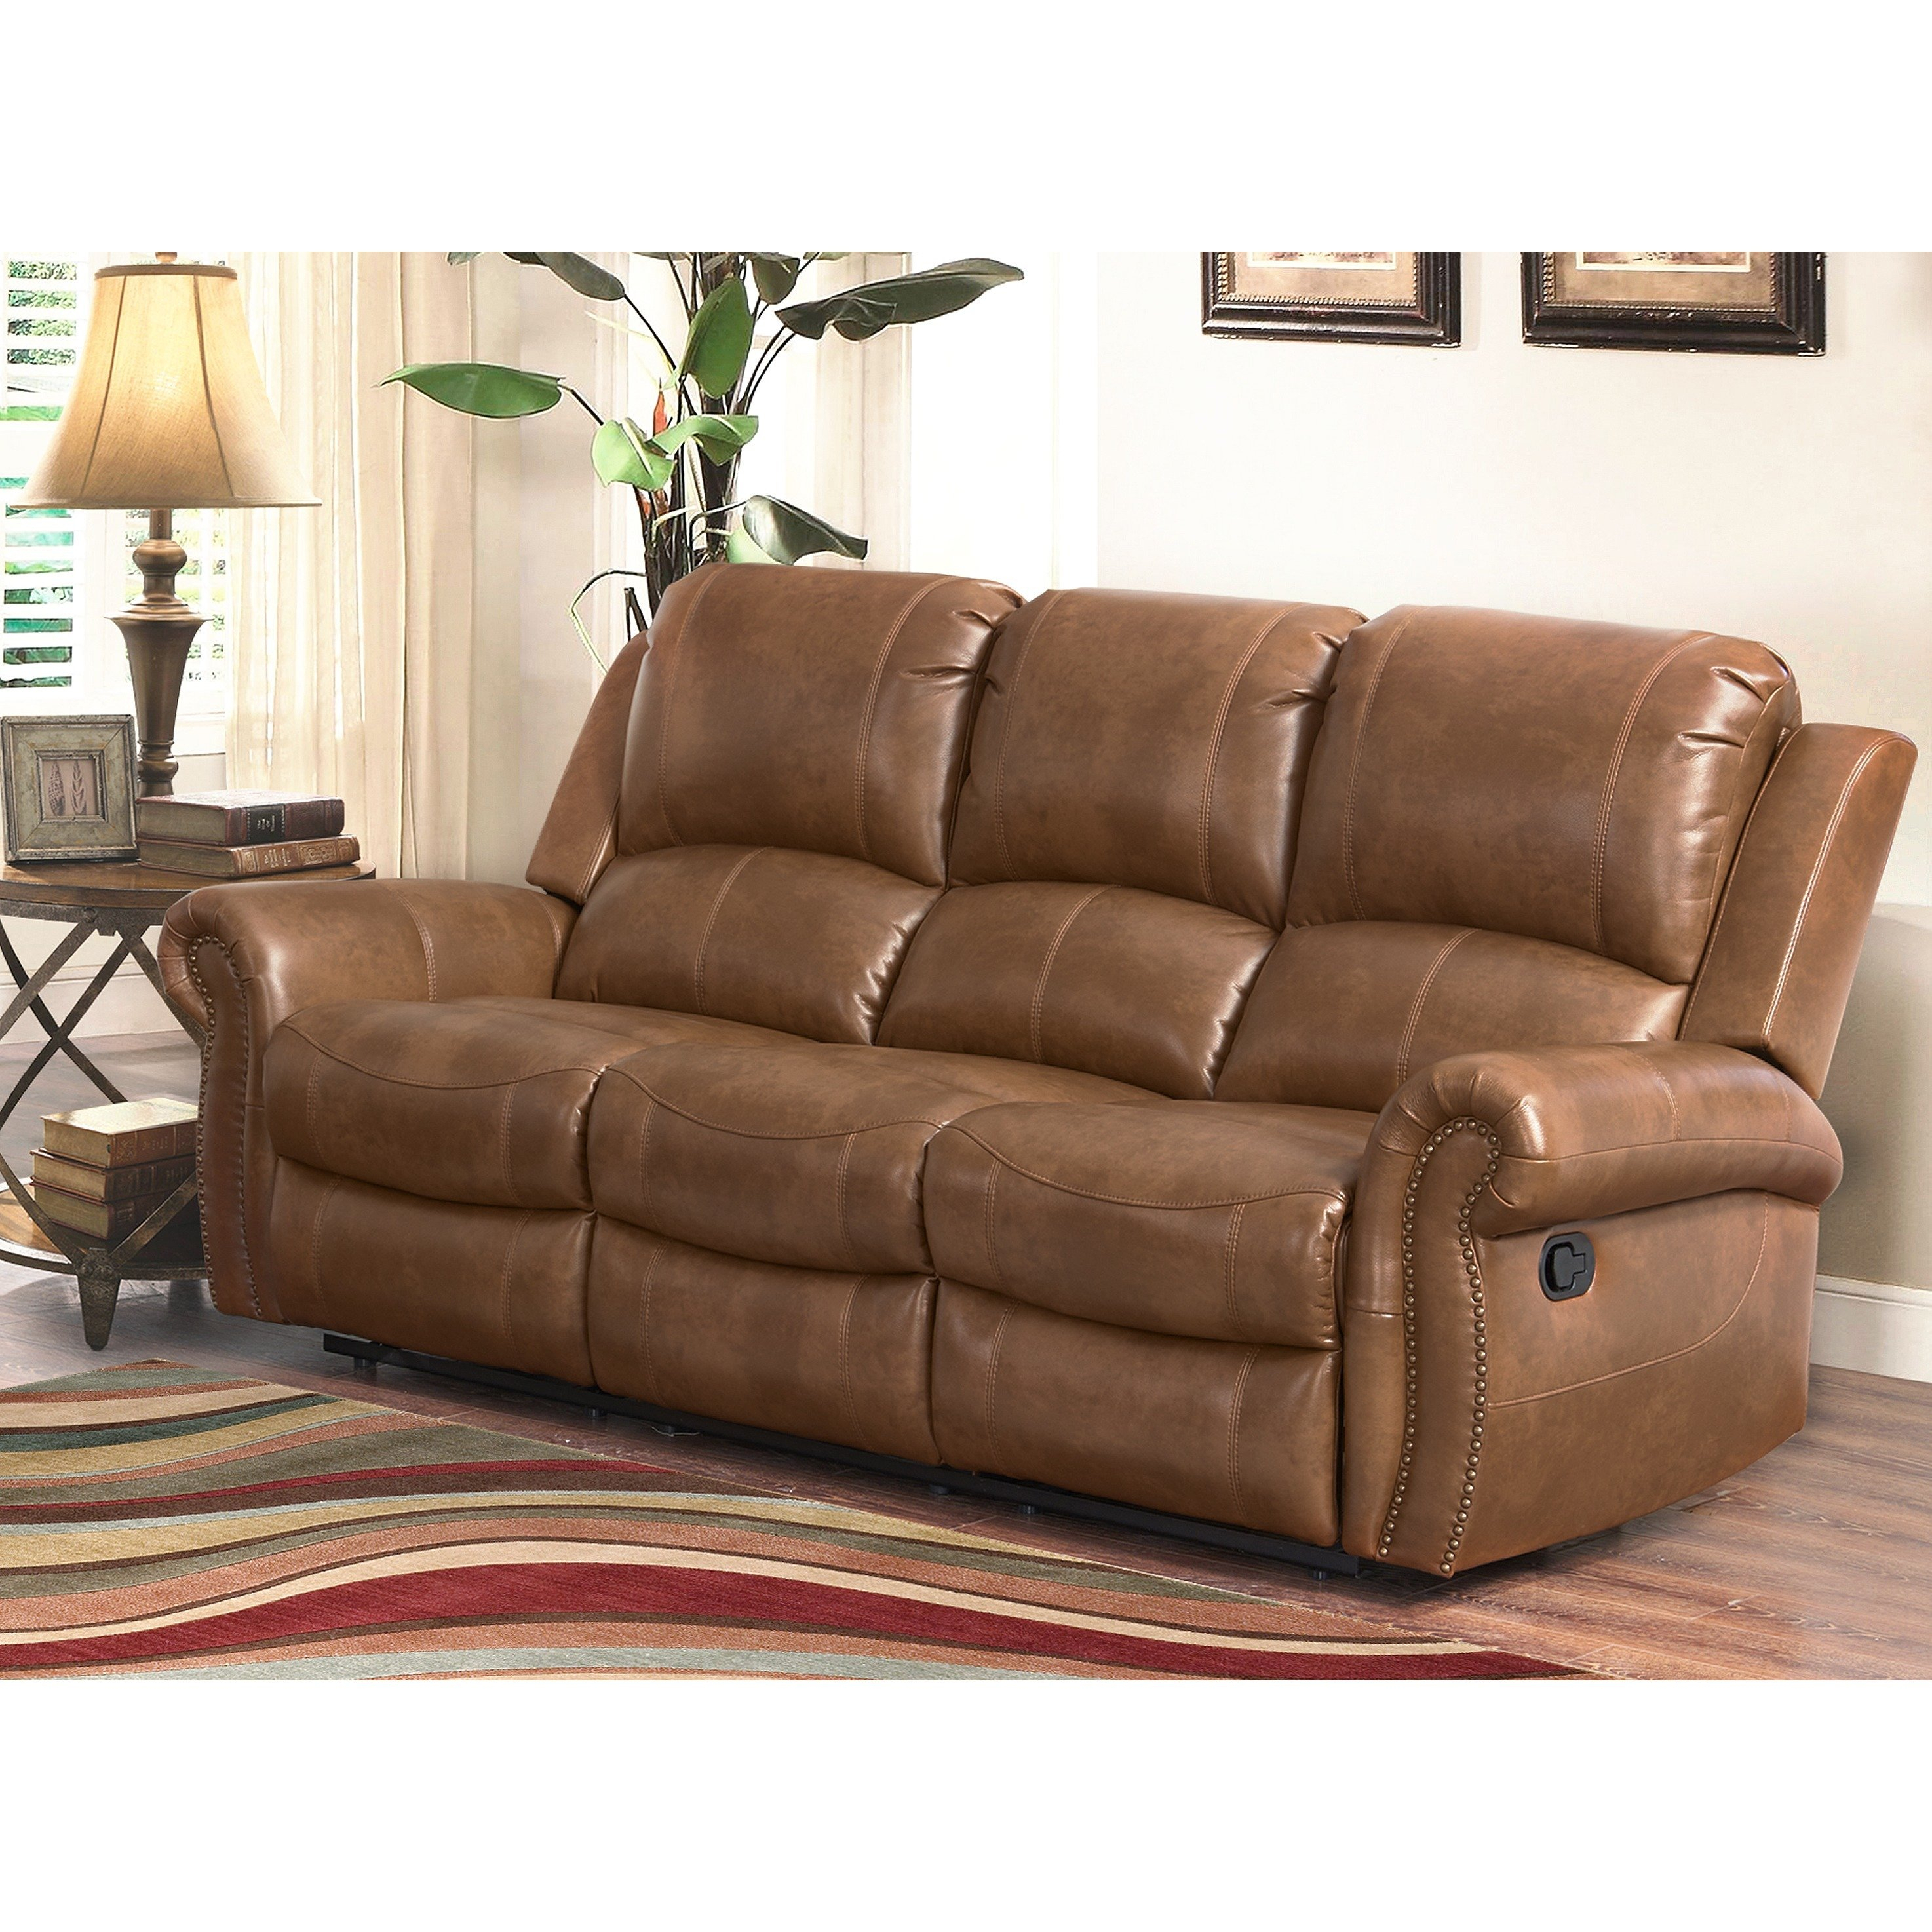 Shop Abbyson Skyler Cognac Leather Reclining Sofa – Free Shipping For Gina Blue Leather Sofa Chairs (View 7 of 25)